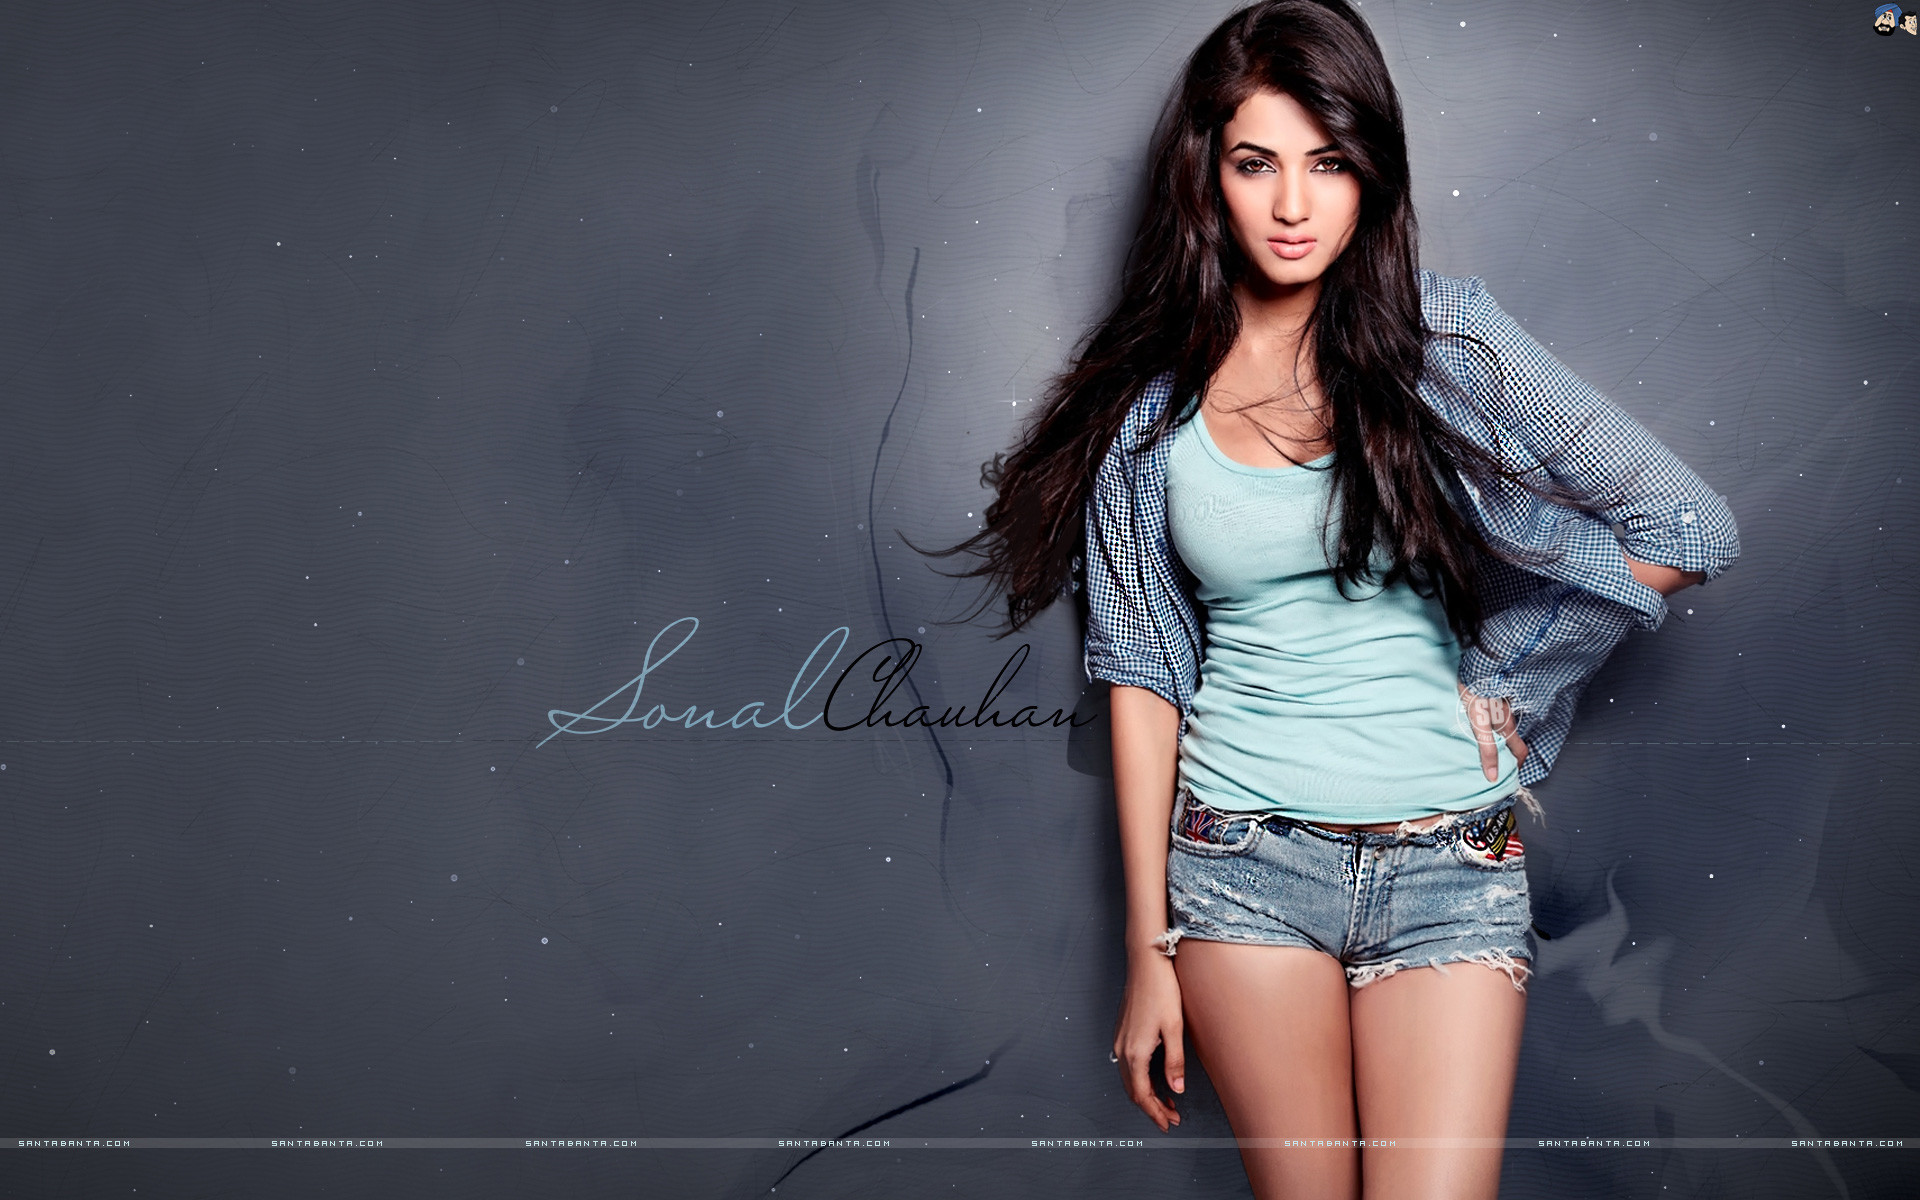 Dress Up Your Desktop With New Year 2017 Wallpapers - Hot Pics Of Sonal Chauhan , HD Wallpaper & Backgrounds